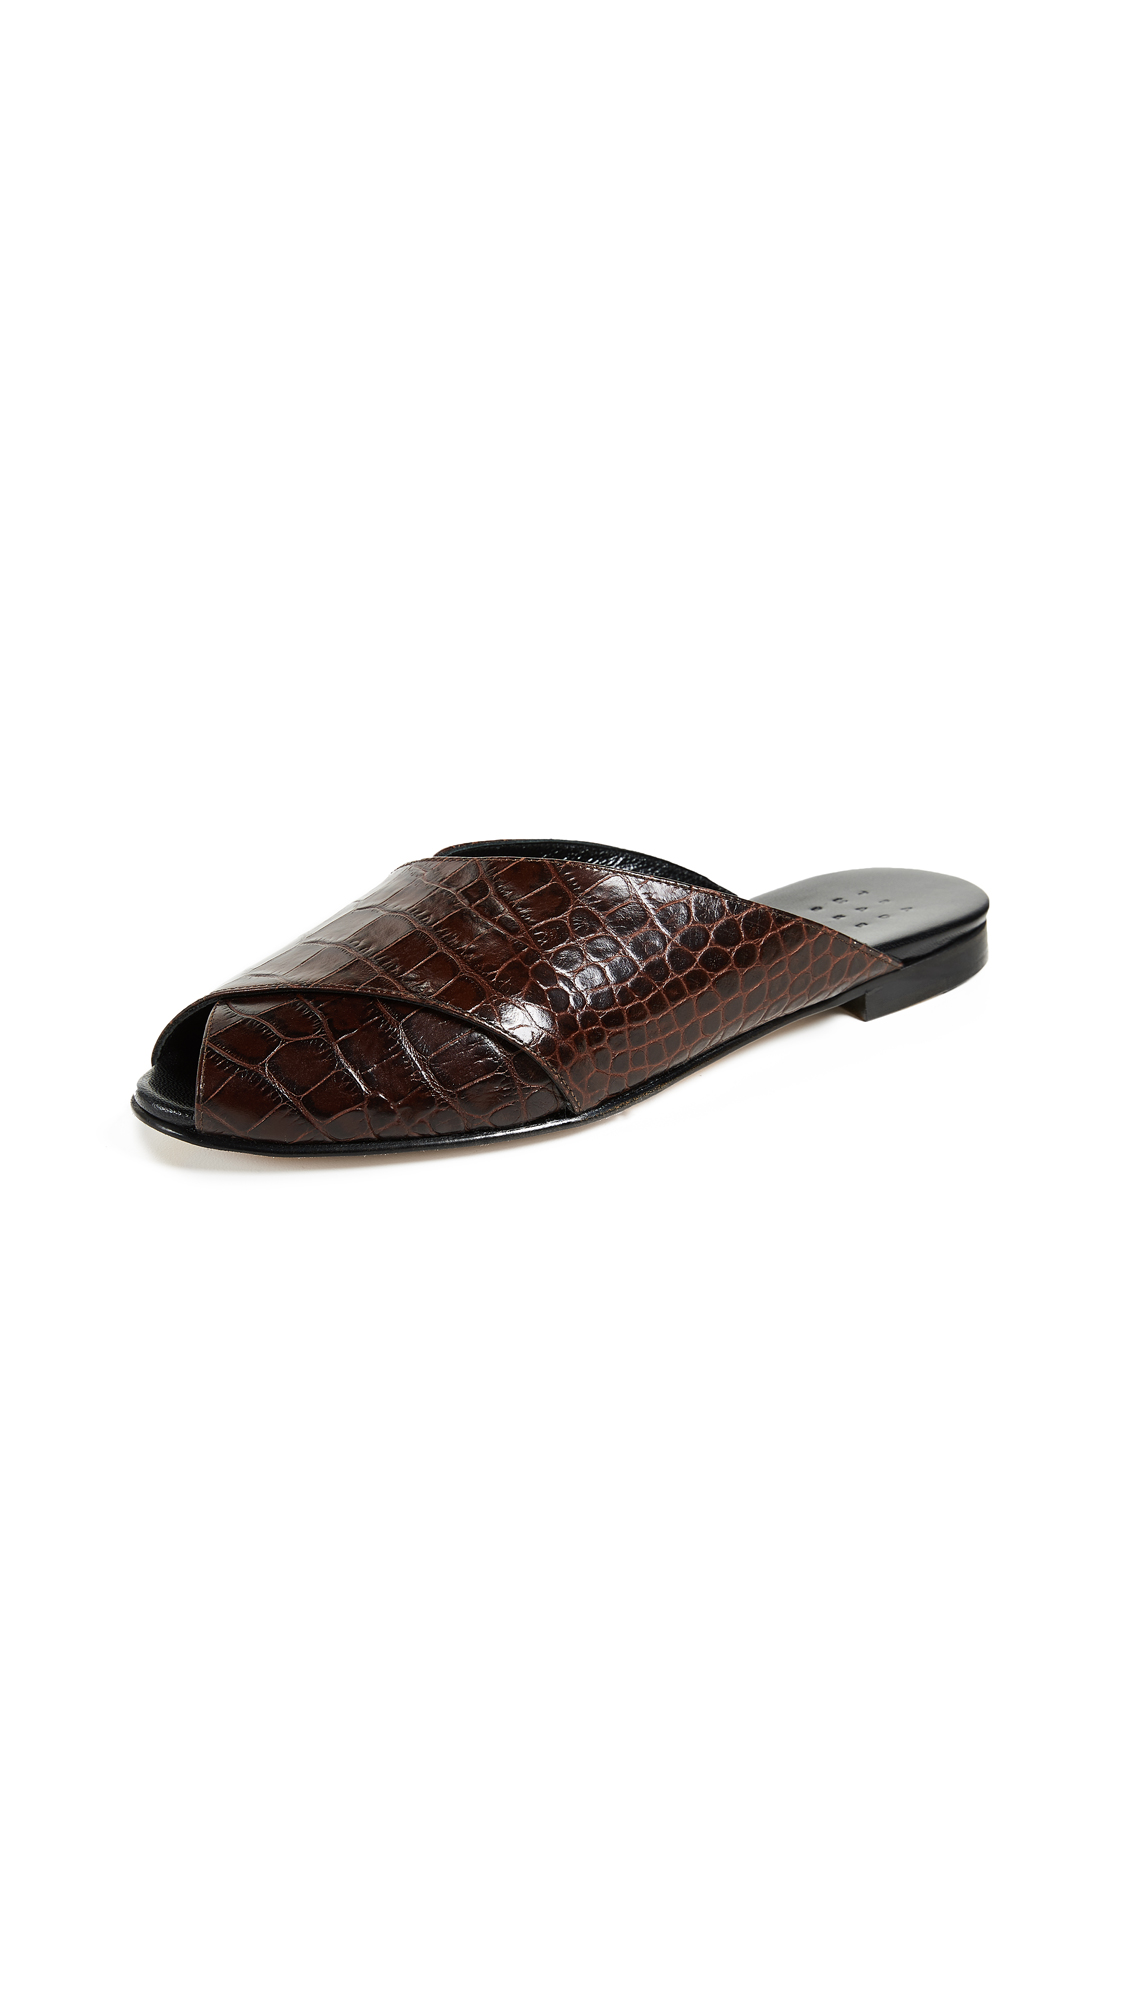 Trademark Pajama Croc Sandals - Chocolate Brown